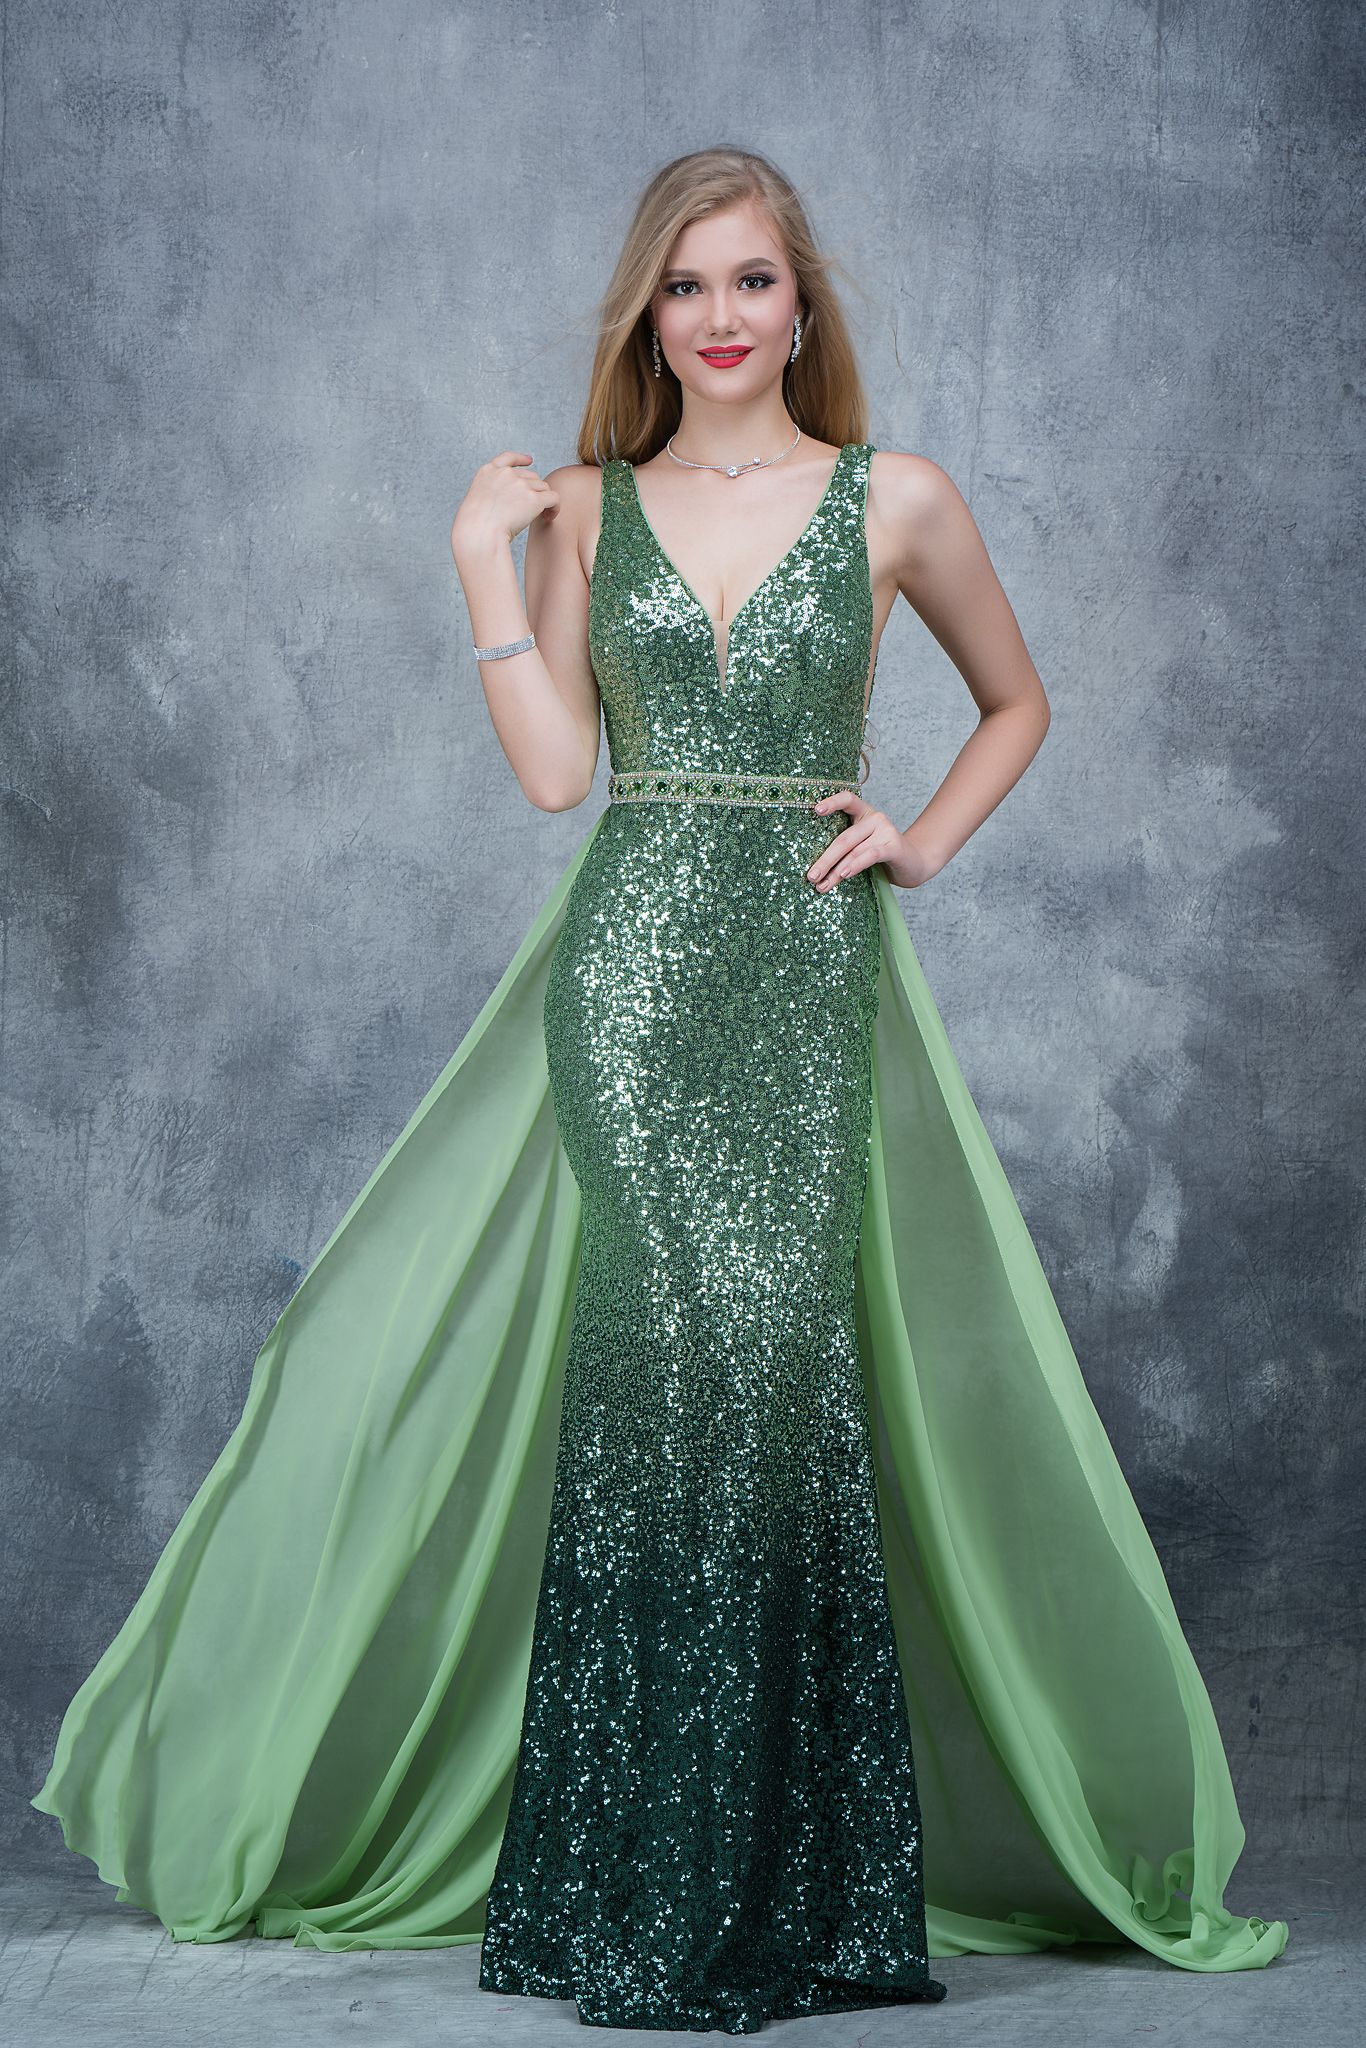 royal size dress pinterest dress designs pageants and prom